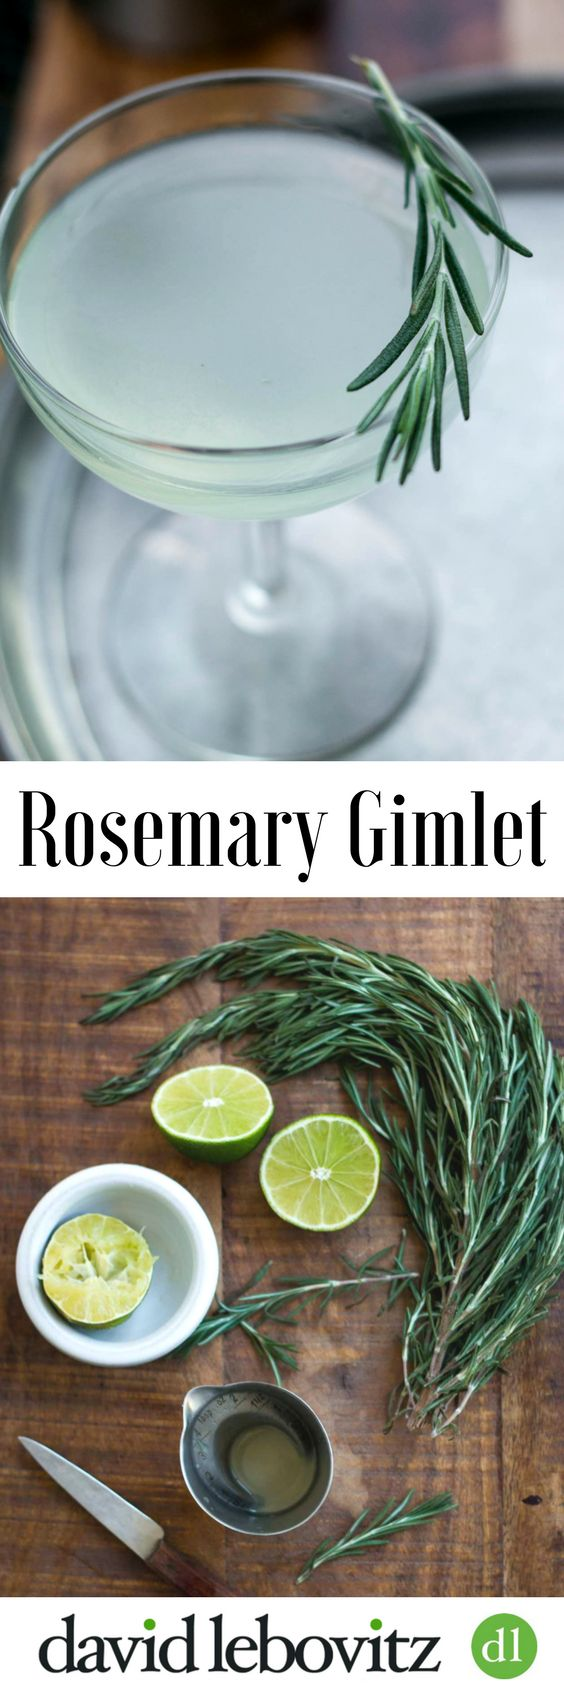 Rosemary Gimlet Cocktail; A delicious twist on the classic!